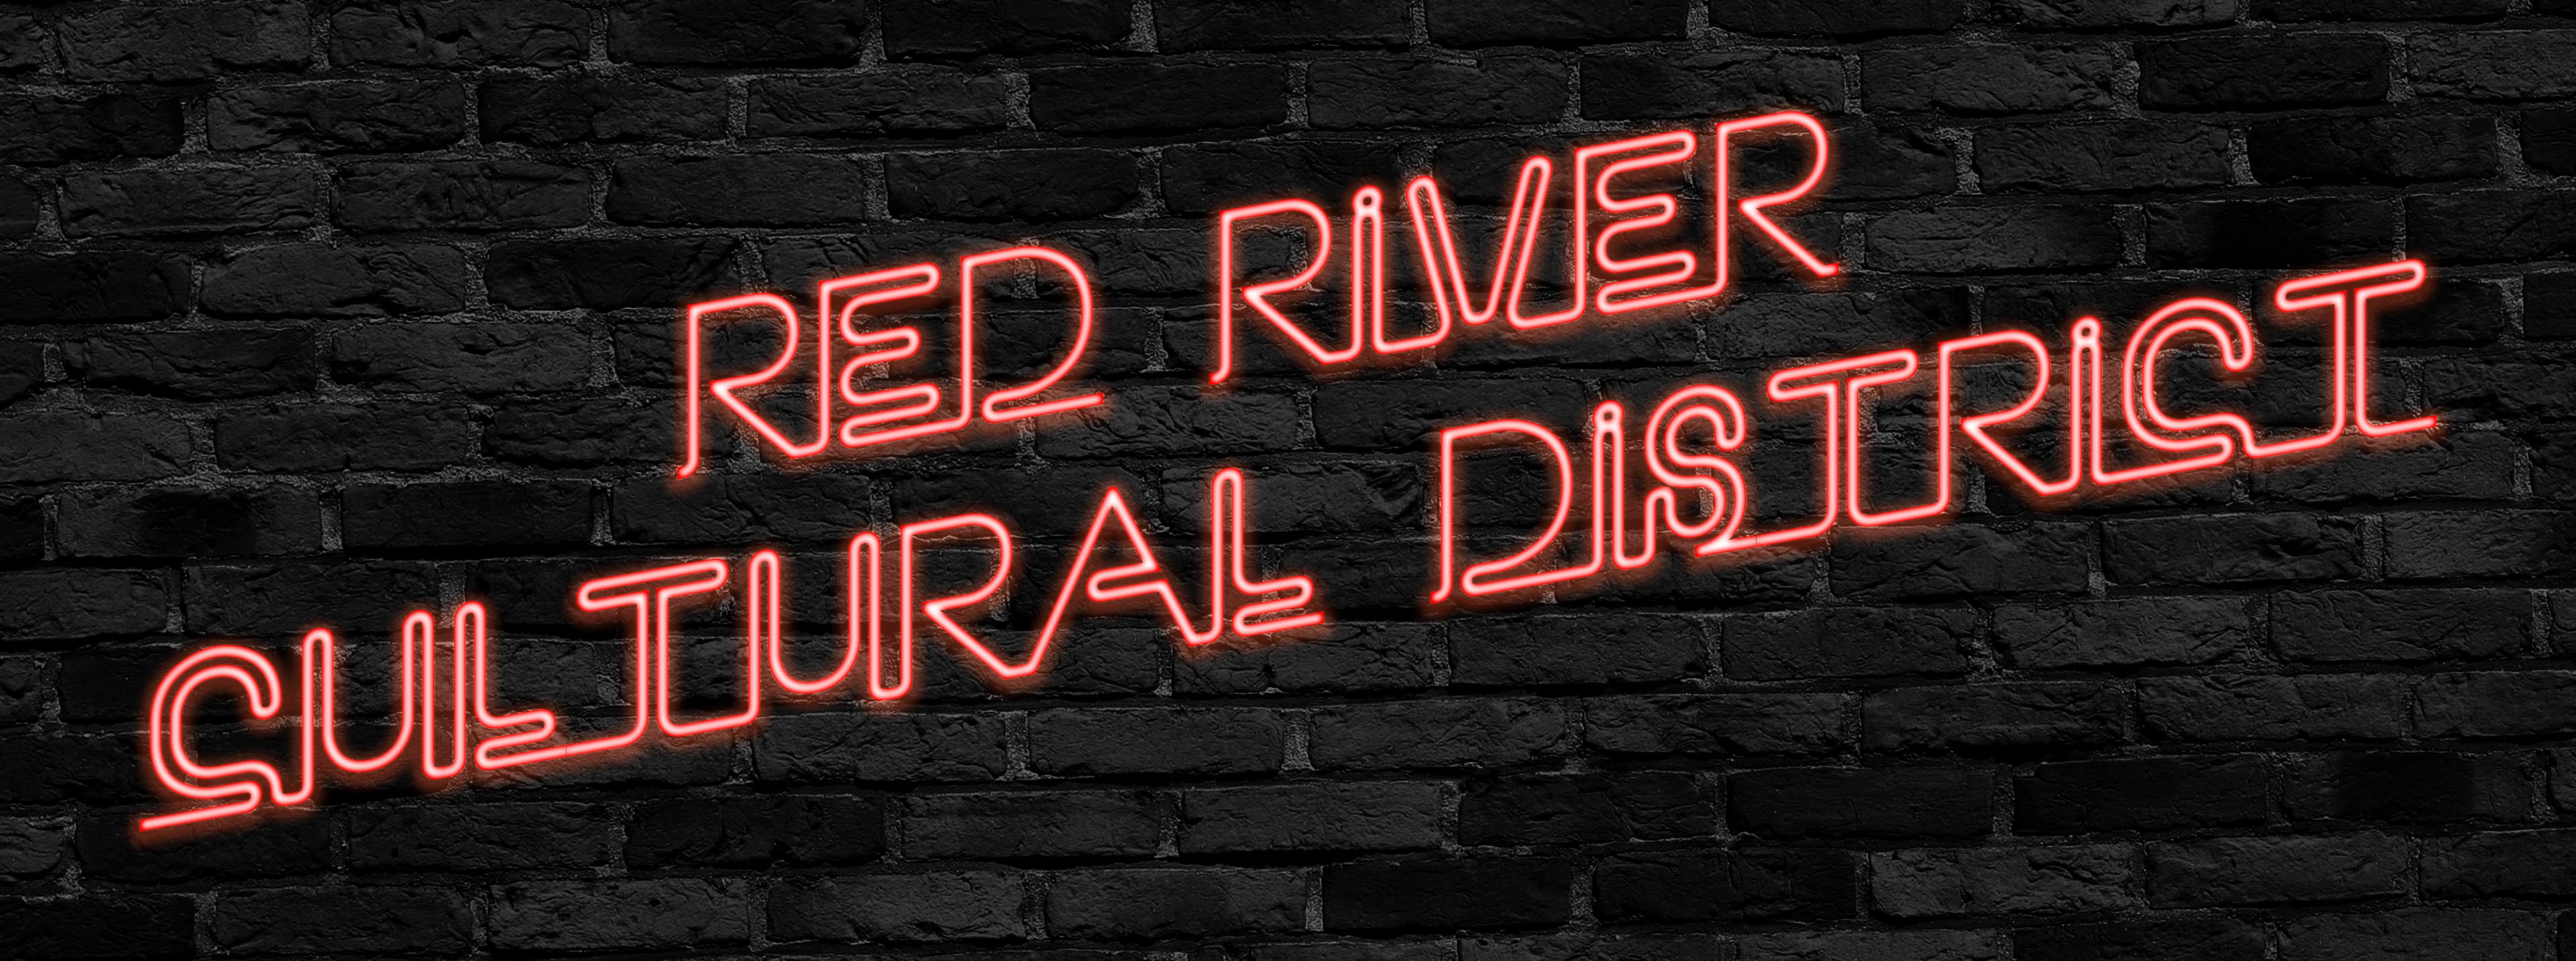 Red River Cultural District: The Night Soul of Austin